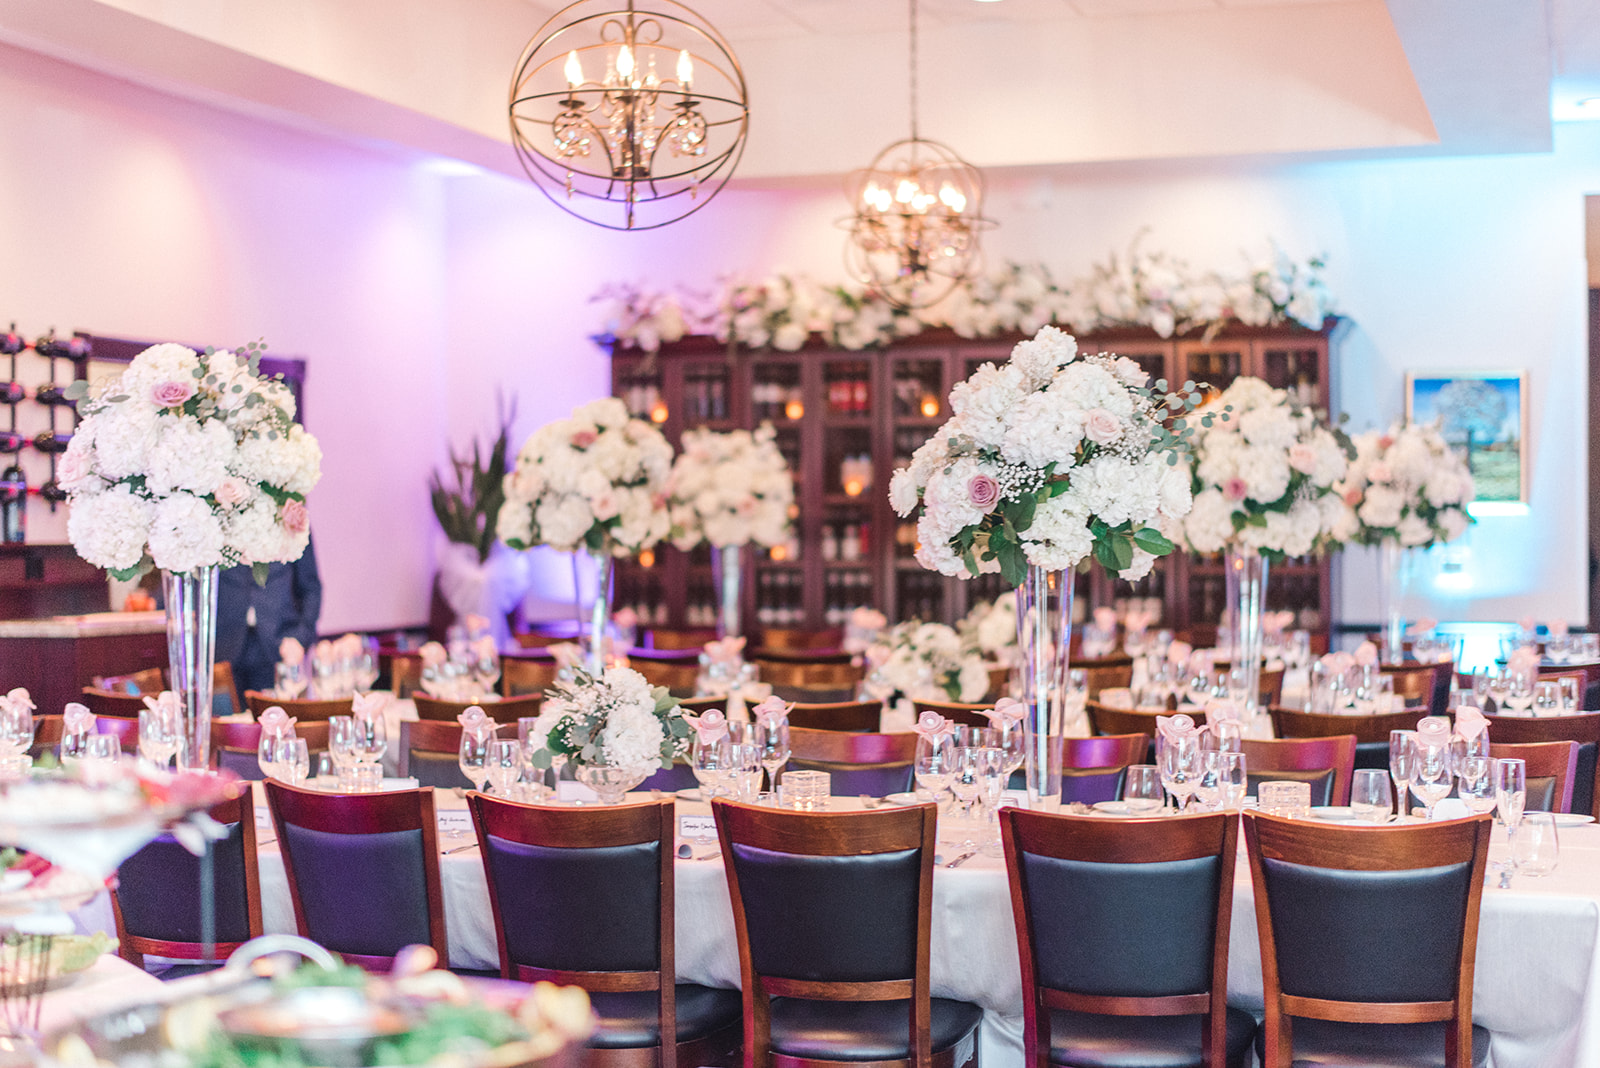 How to Have a Luxury Wedding on a Budget | Shopping